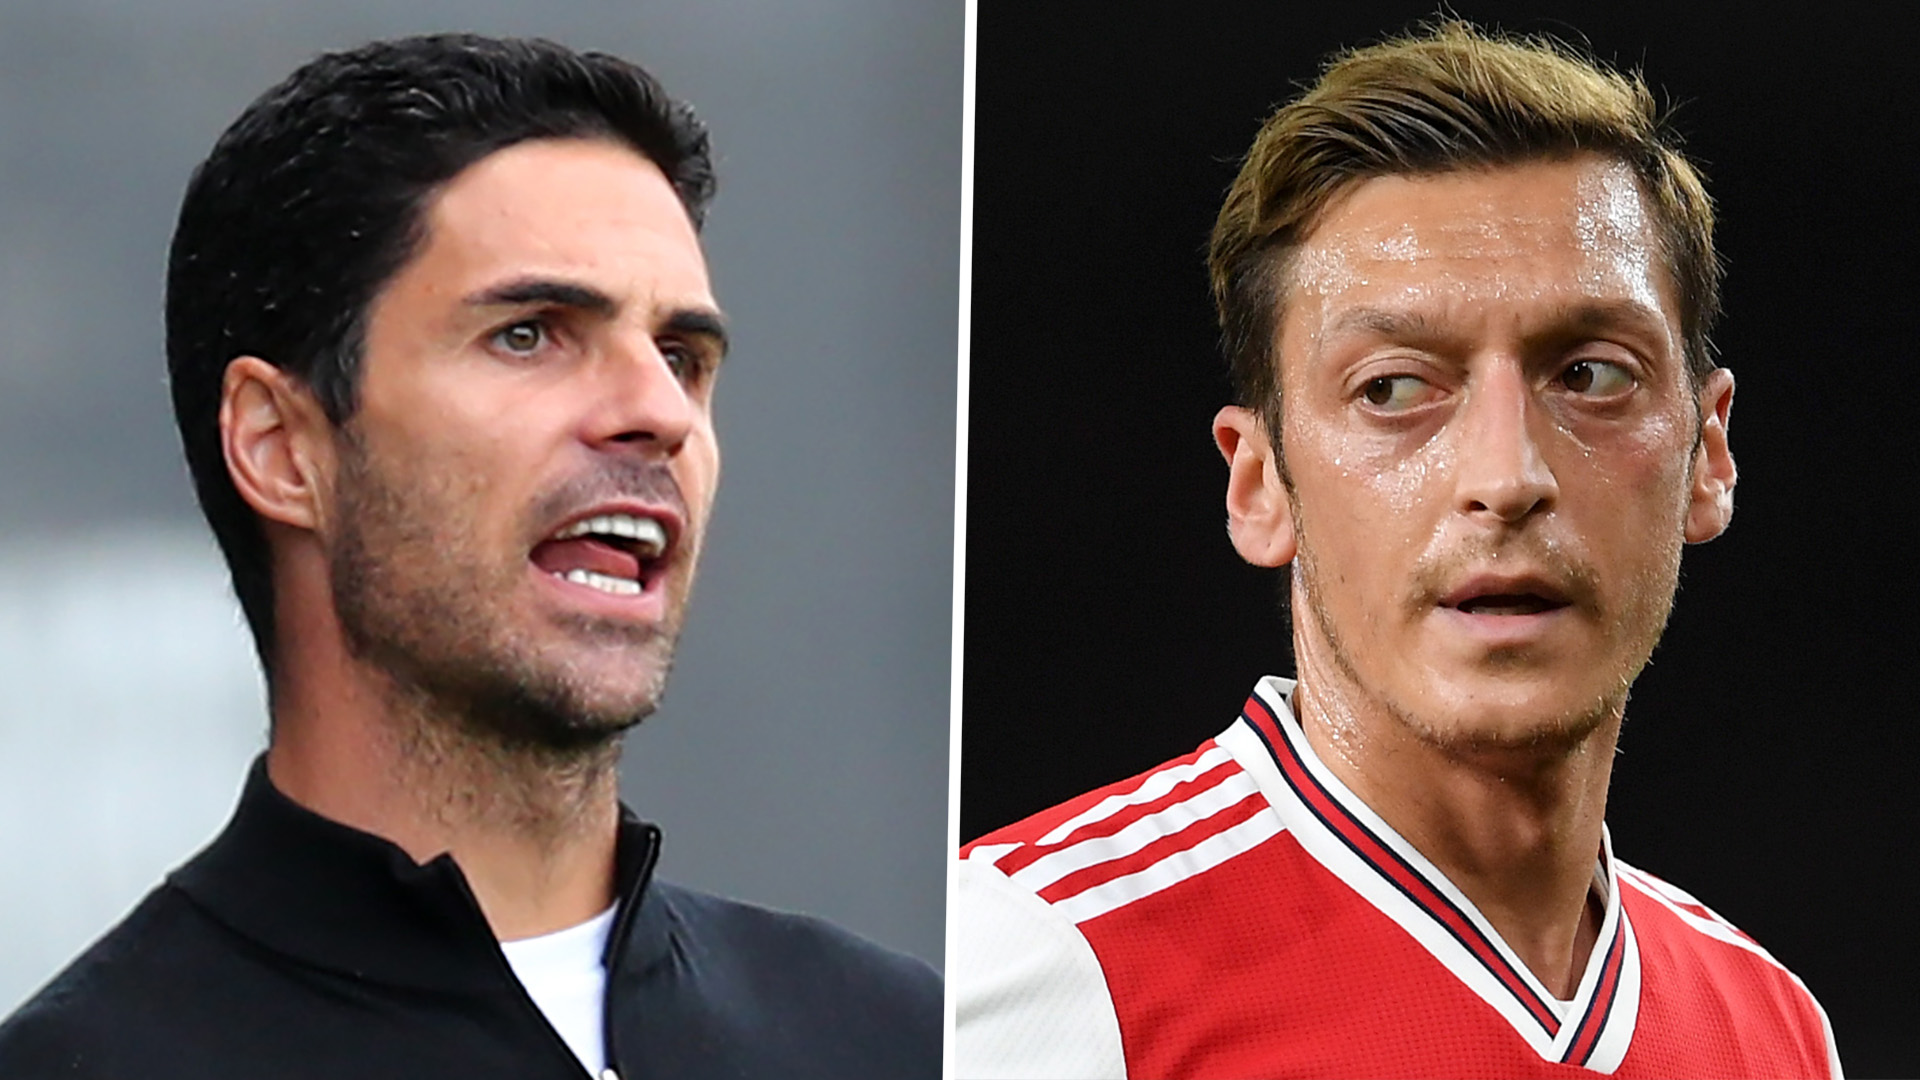 'Ozil issues about confrontation not lack of ability' – Wenger believes Arsenal reprieve can be earned